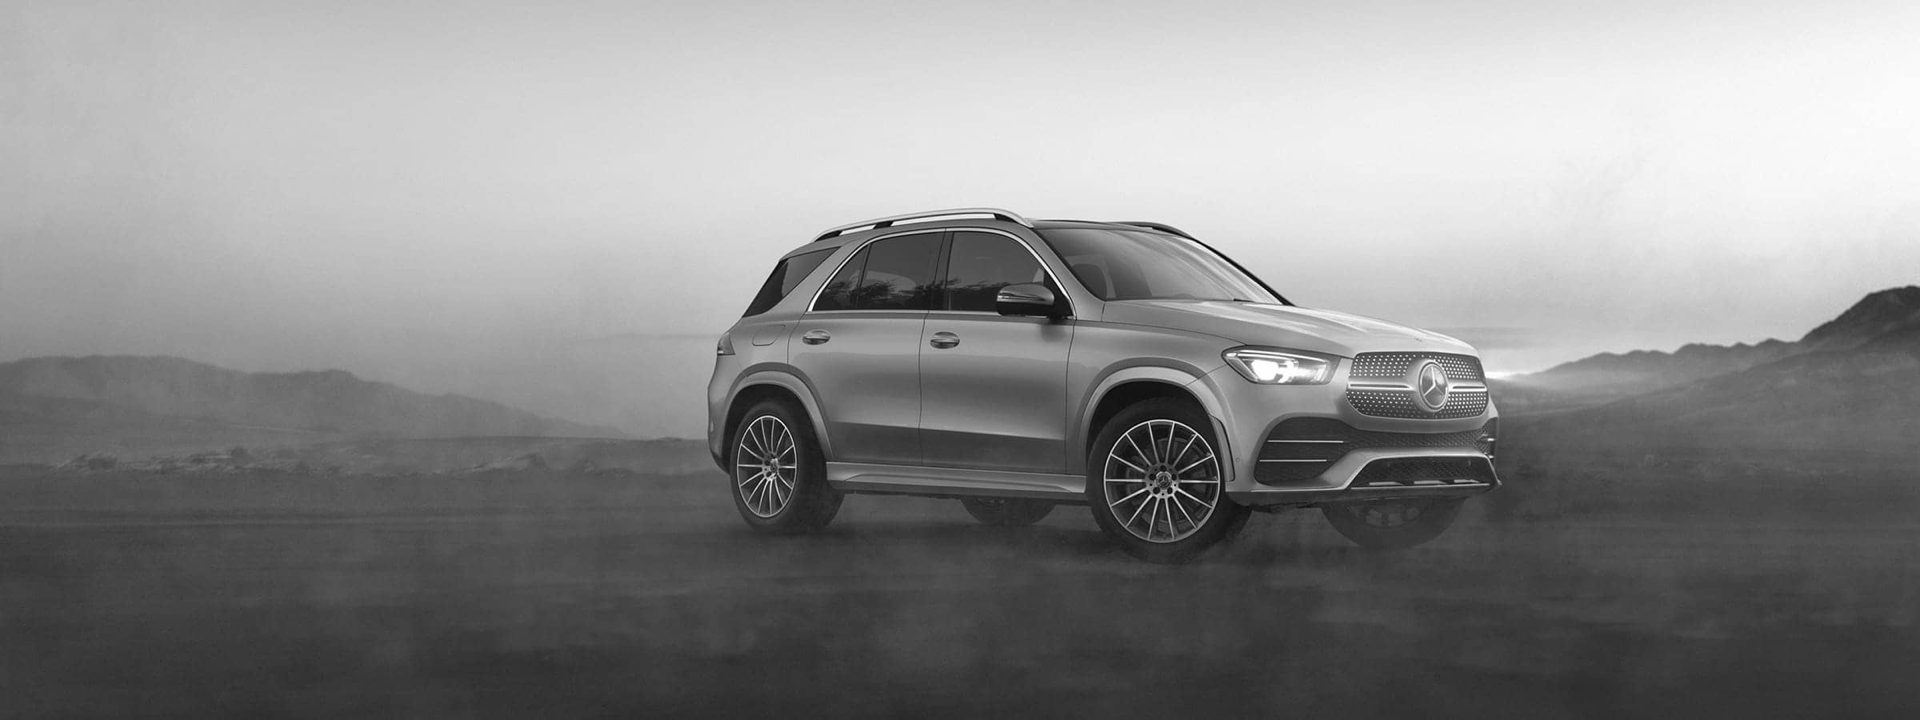 2020 Mercedes GLE parked in foggy plains